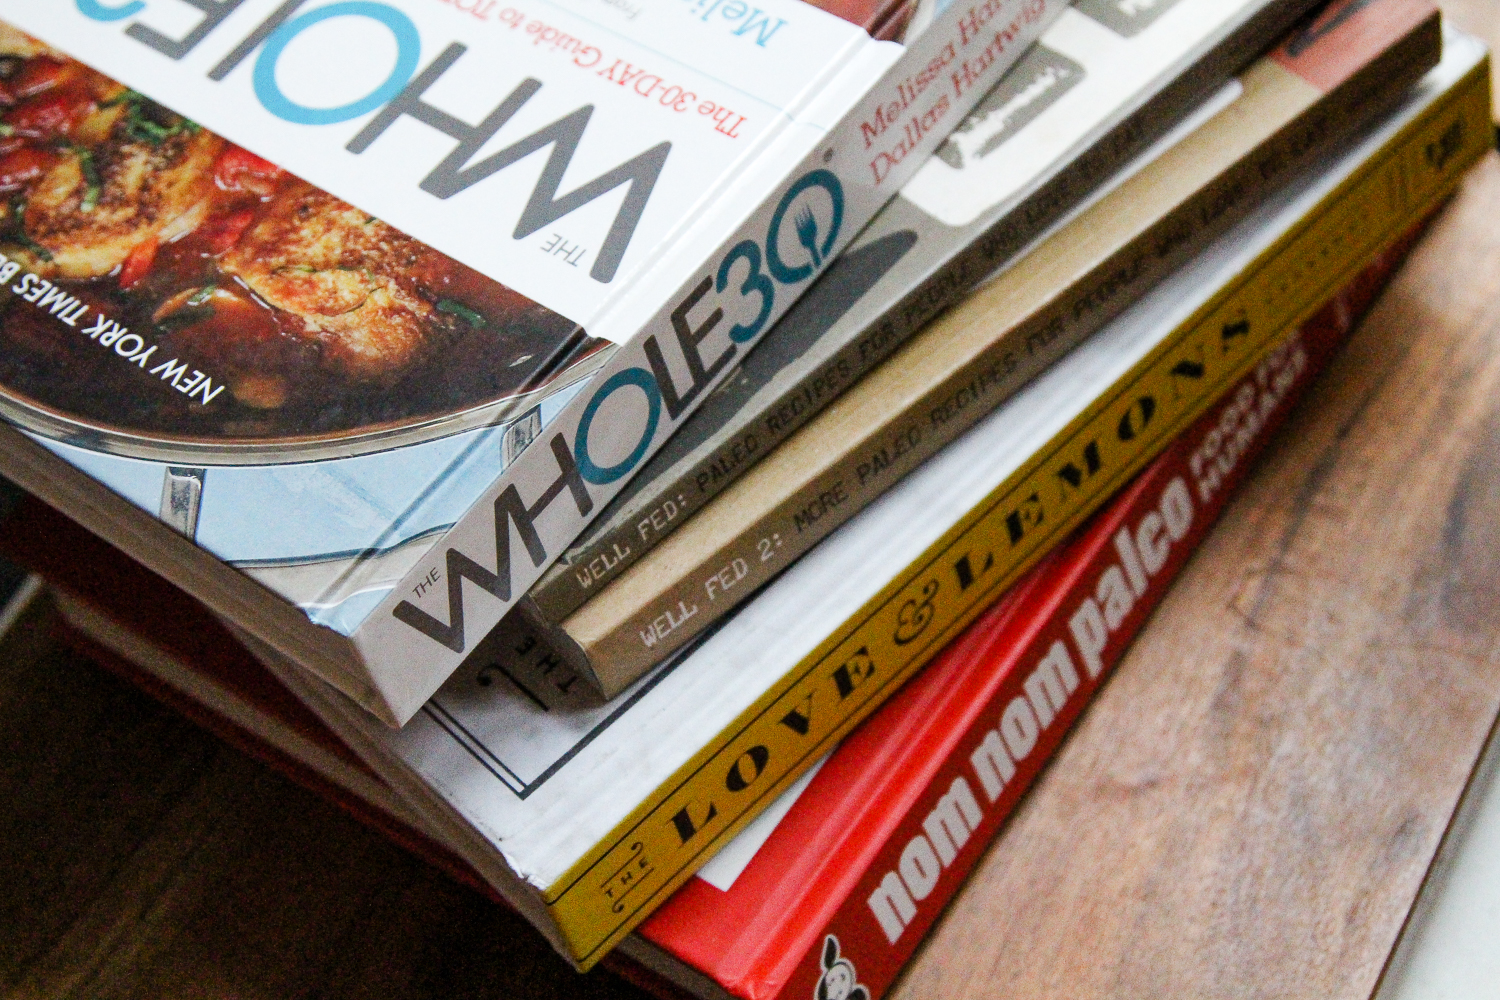 Best Paleo Cookbooks for the Whole30 via Worthy Pause